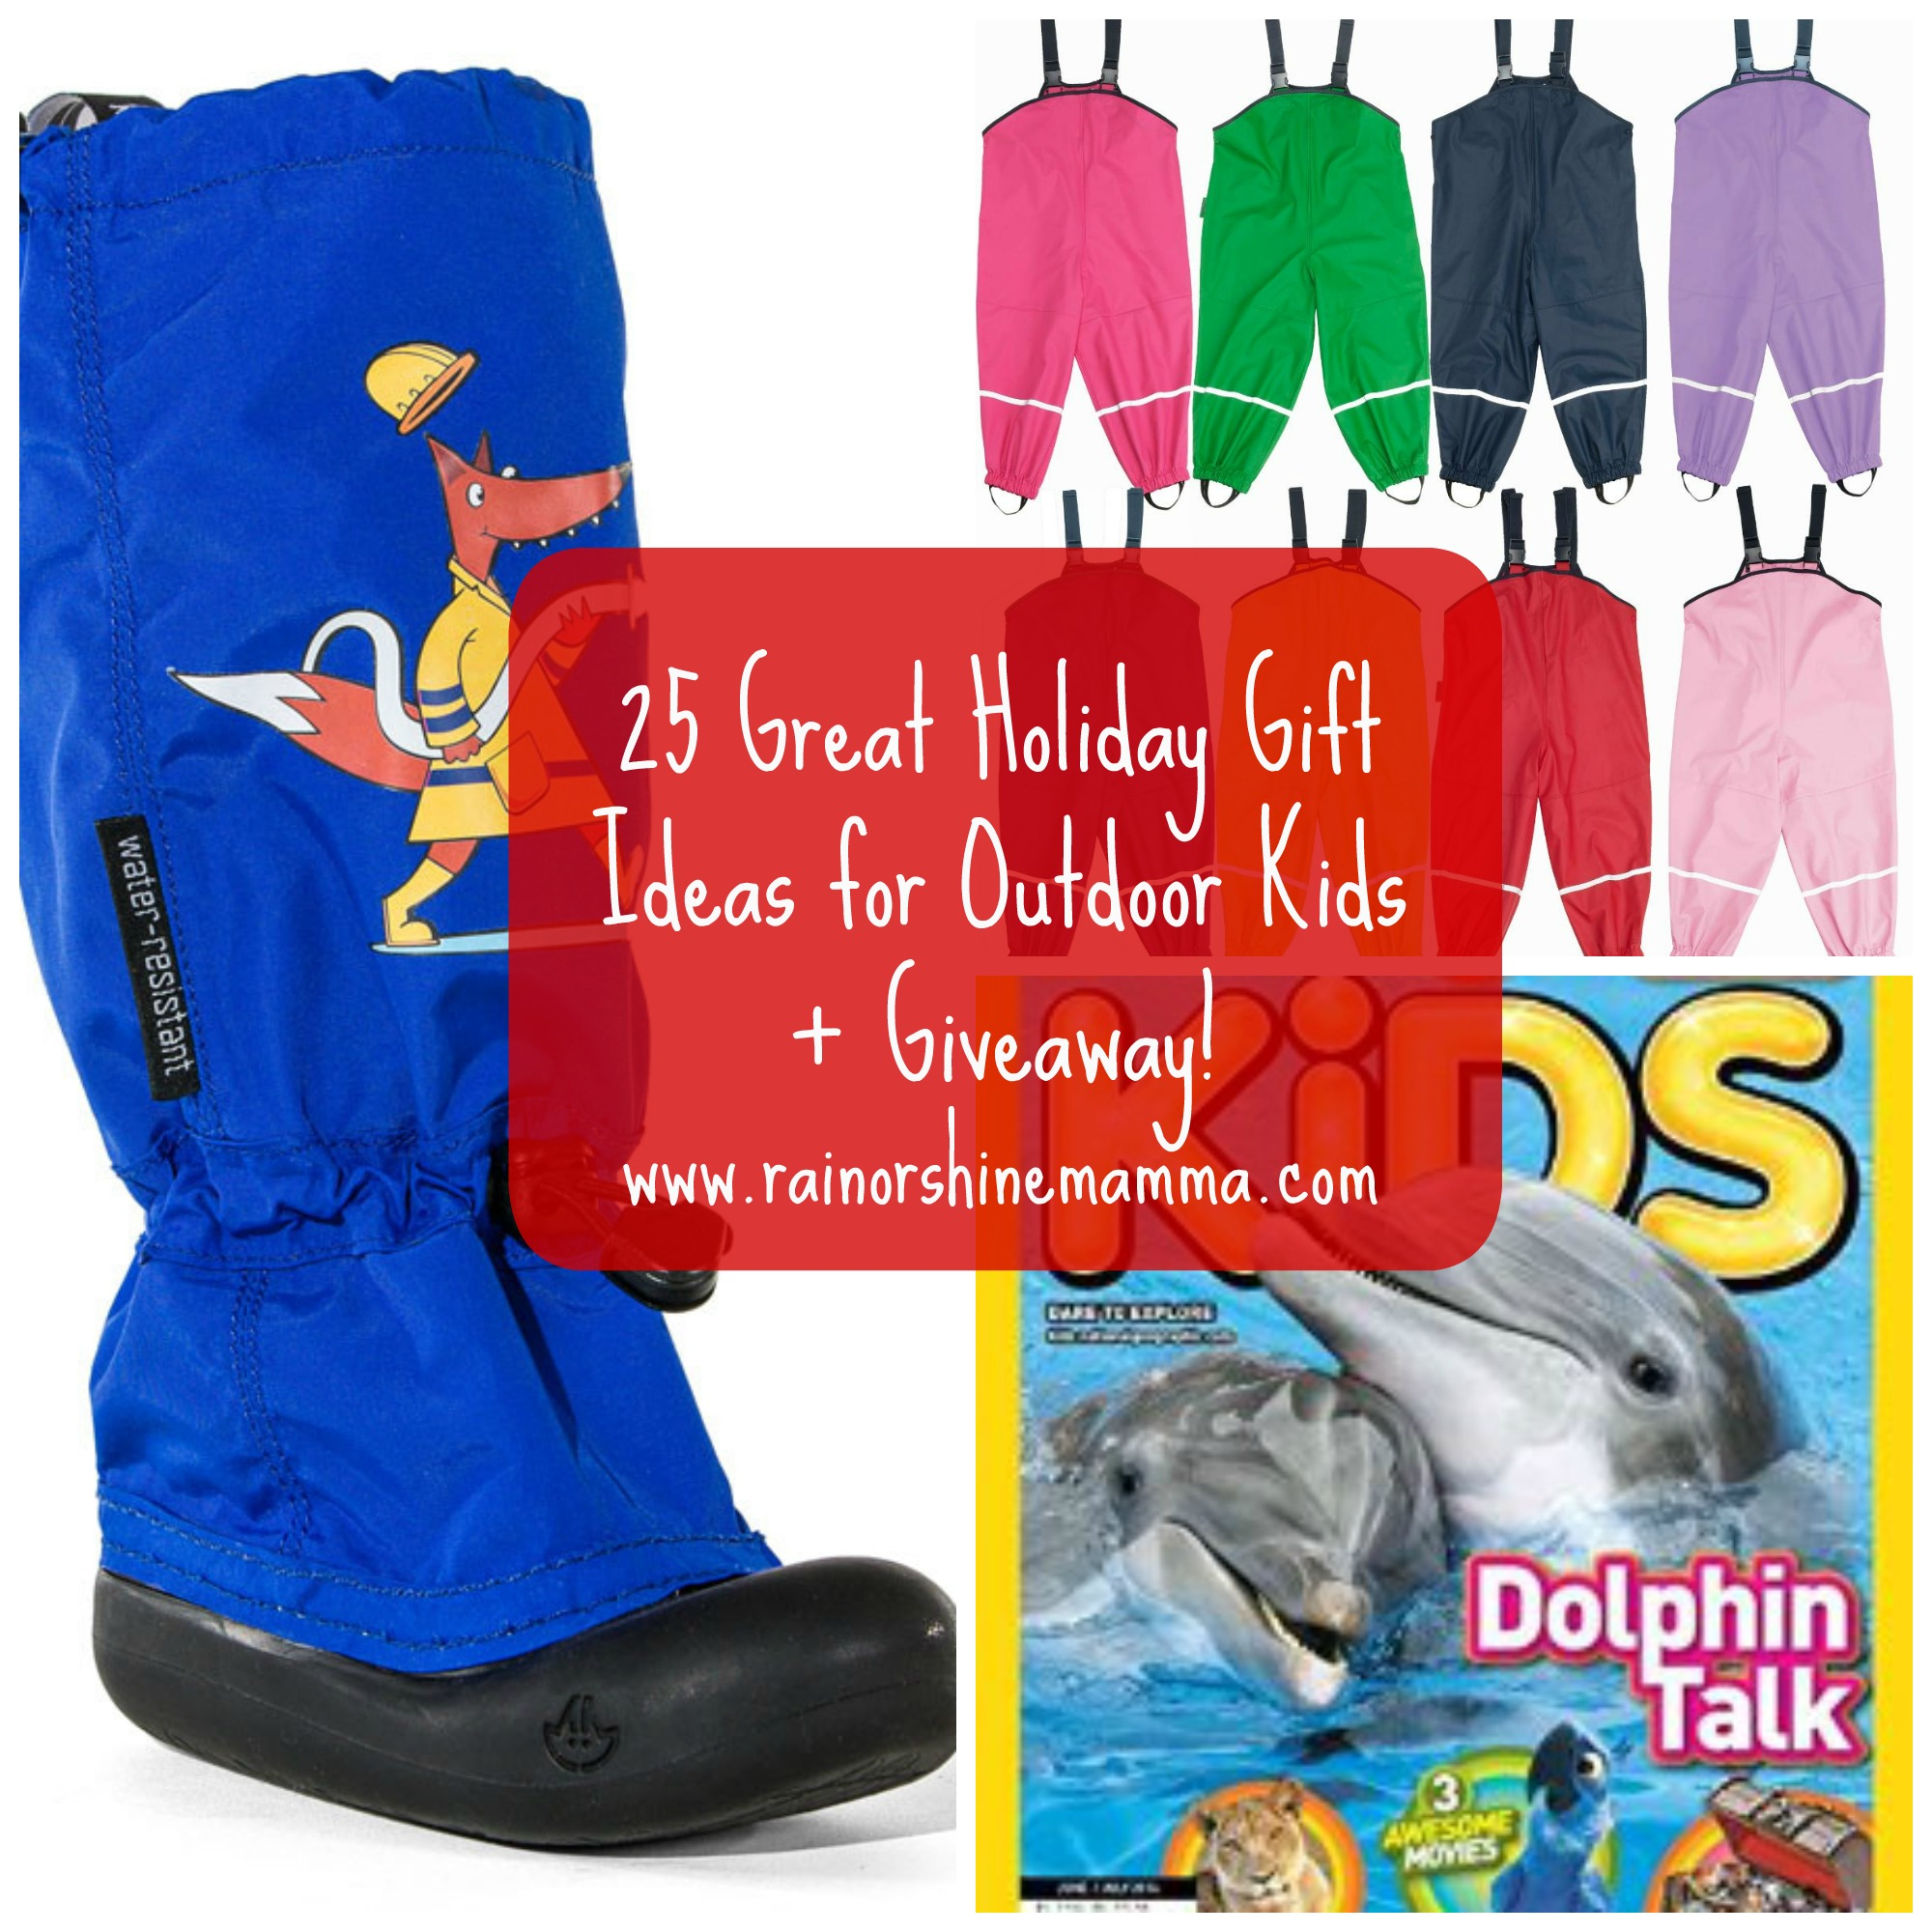 25 Great Holiday Gift Ideas for Outdoor Kids Rain or Shine Mamma